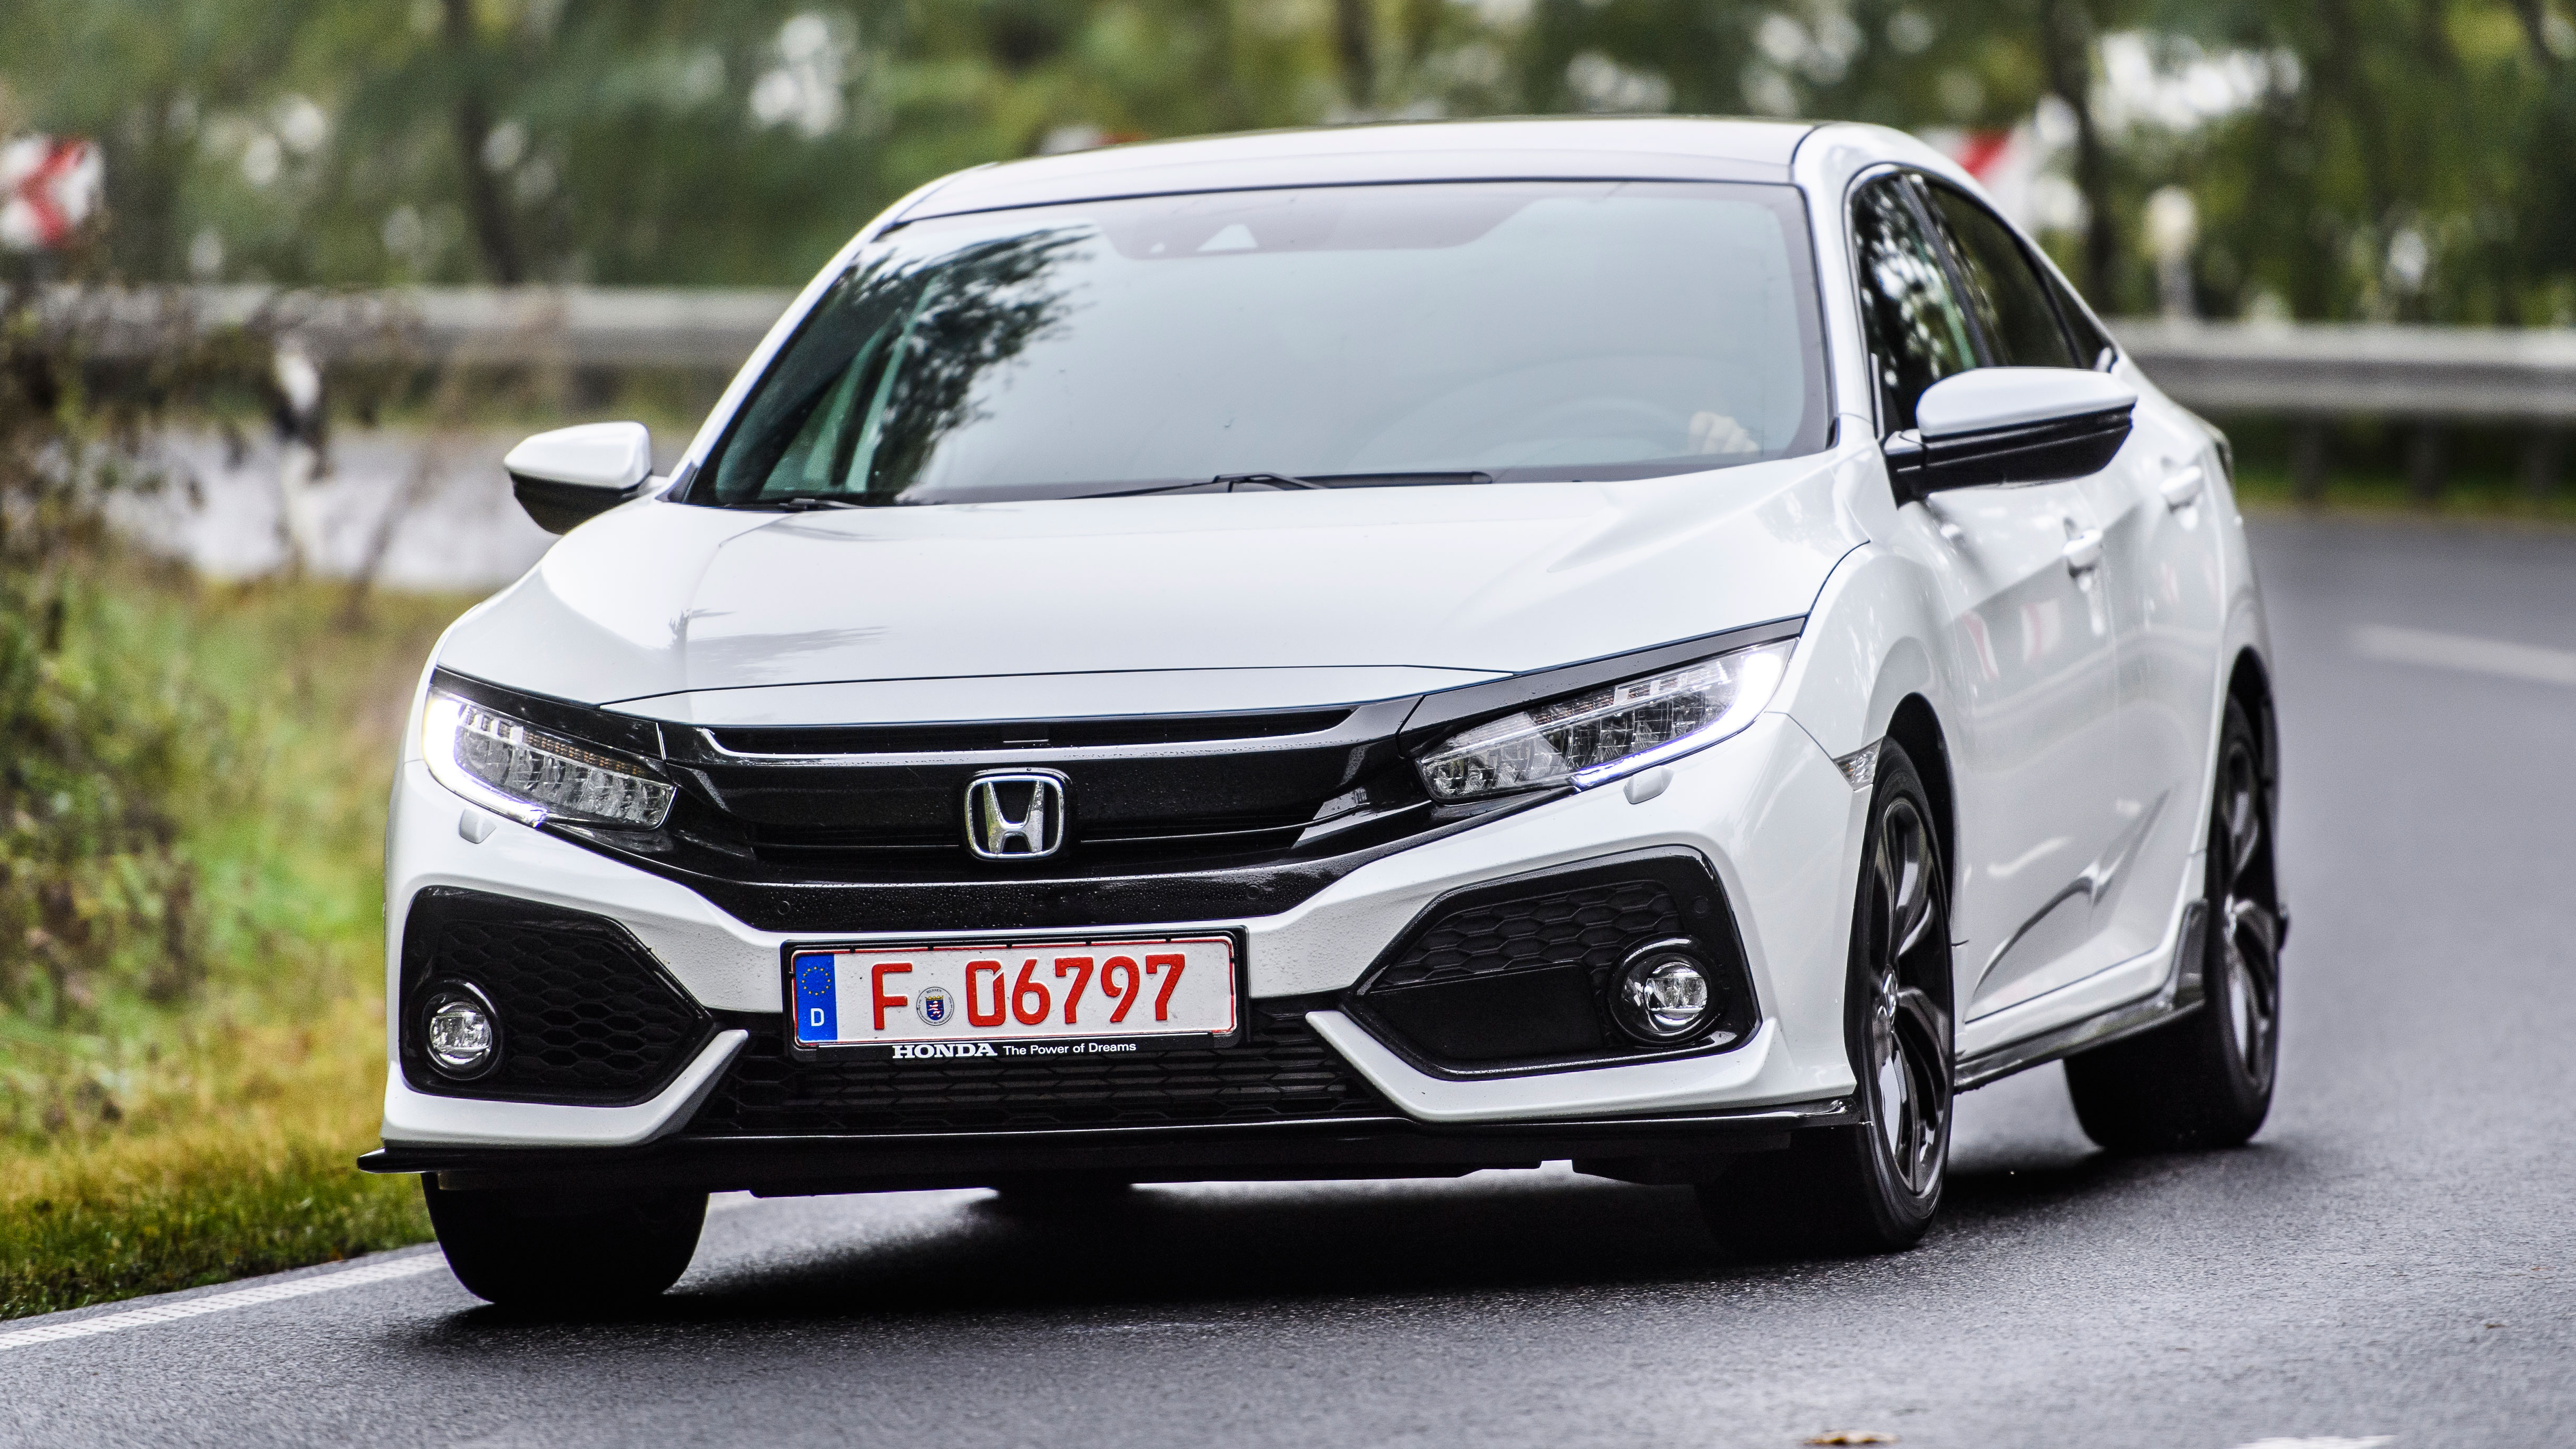 Honda Civic review: quickest new Civic Sport hatch driven